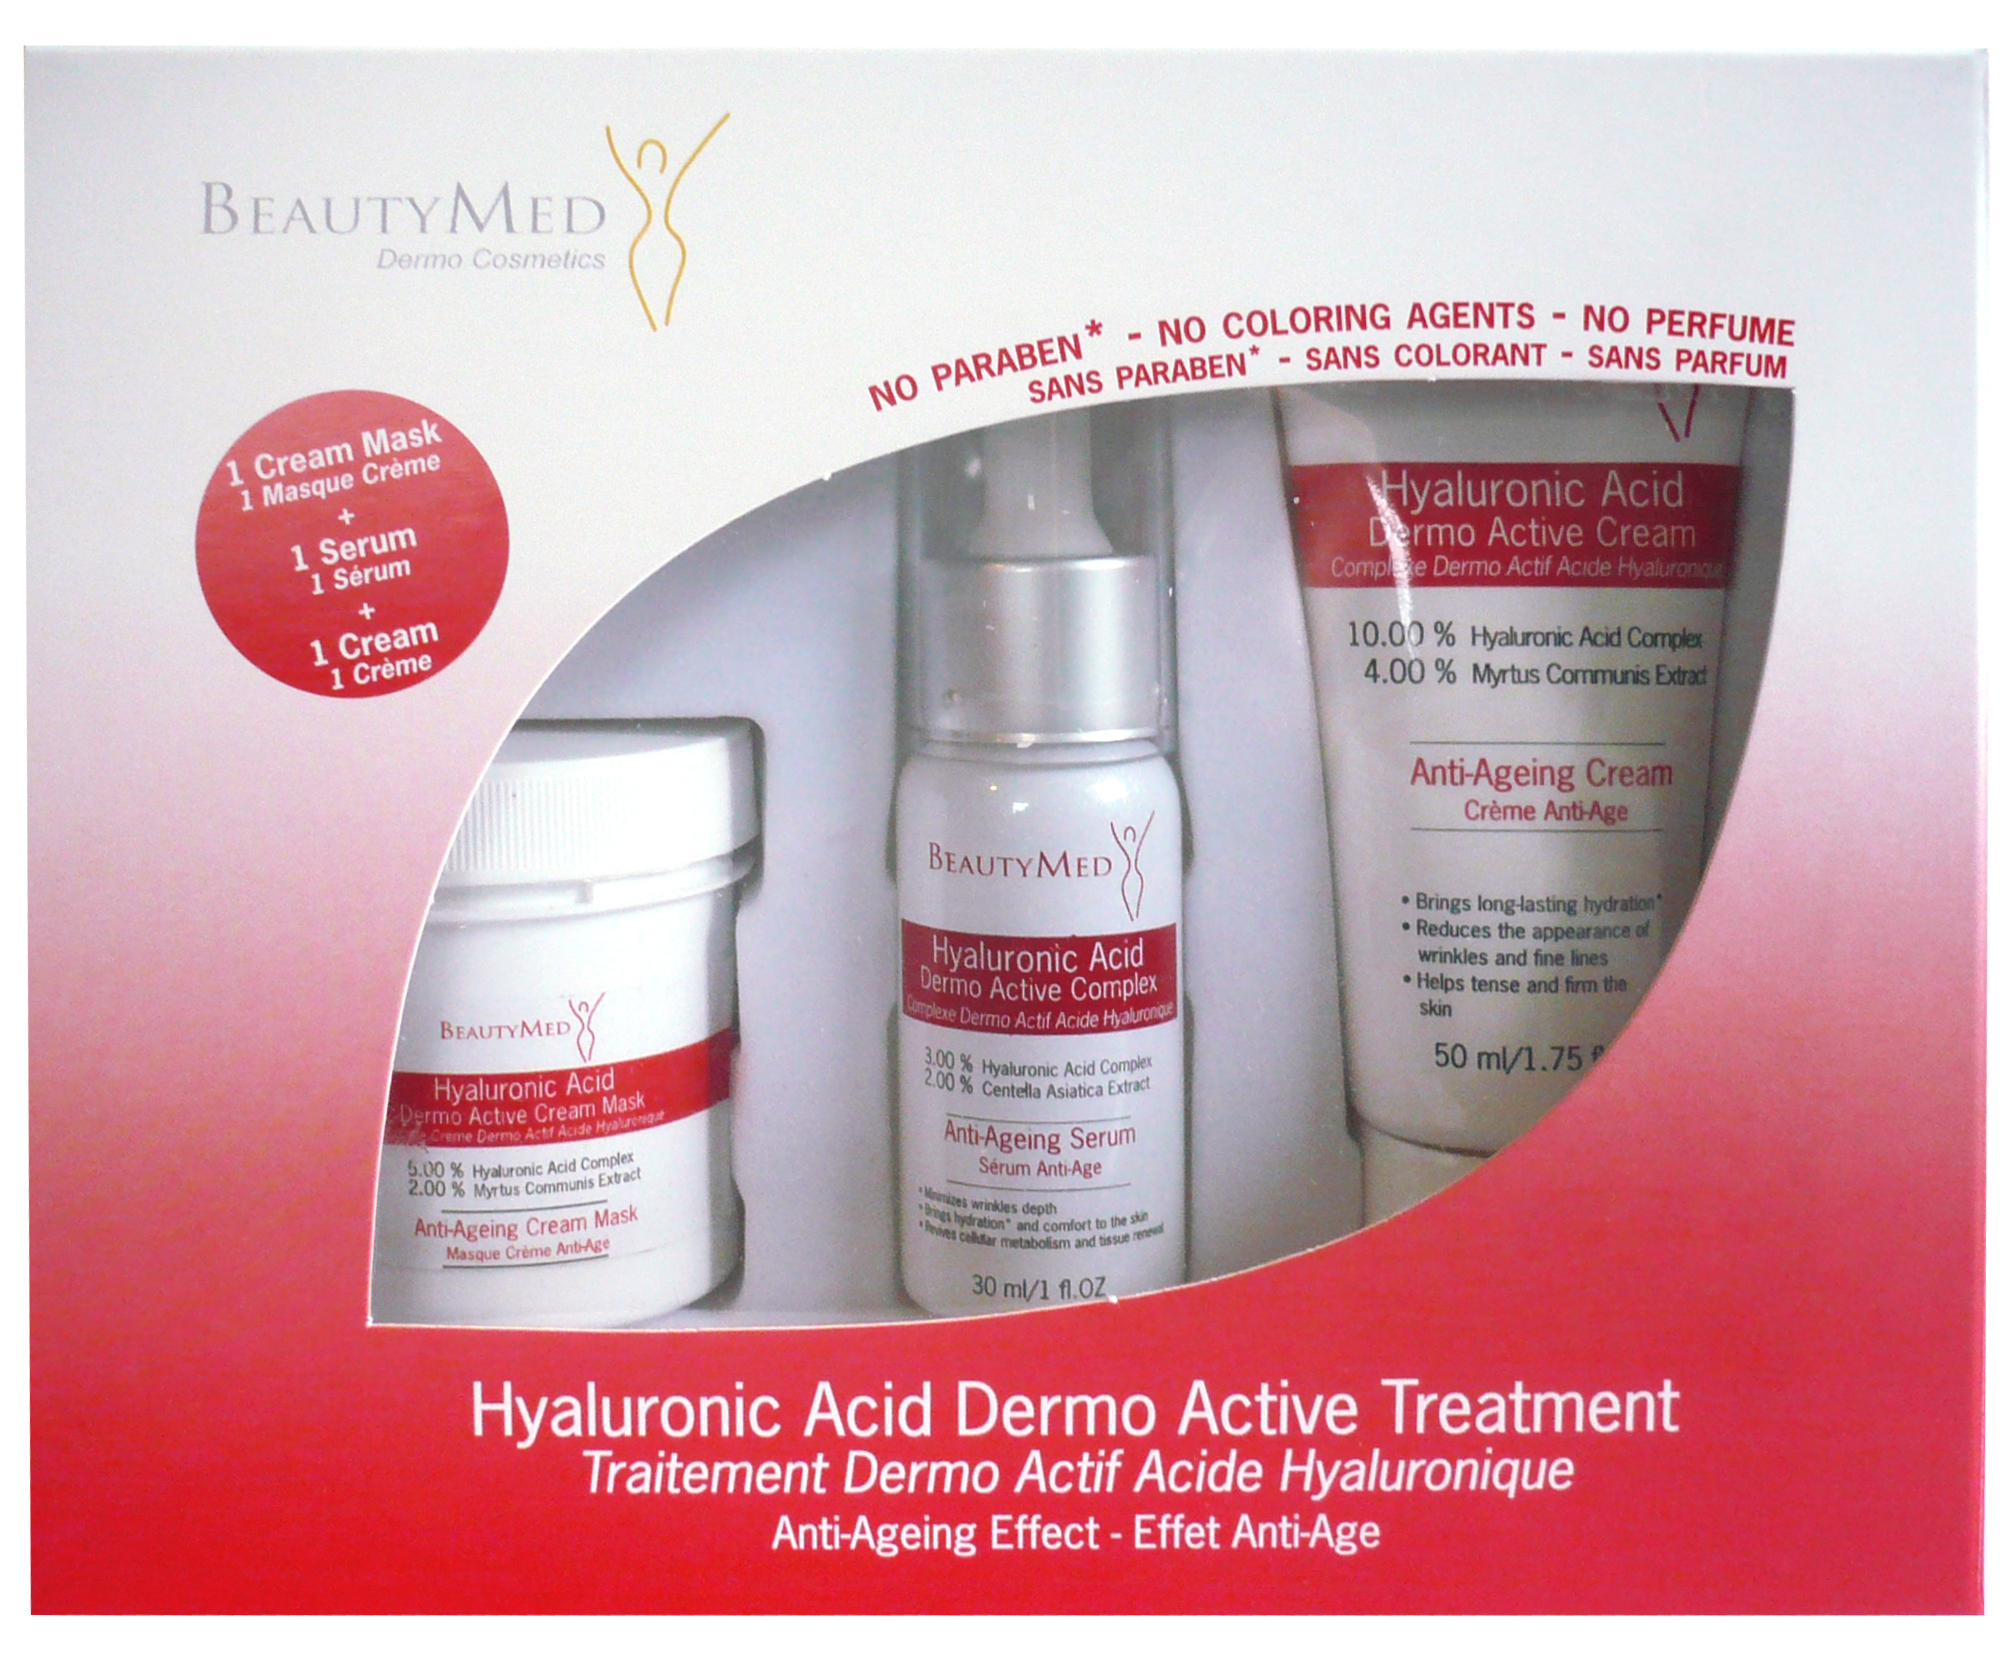 KITS HYALURONIC FACE